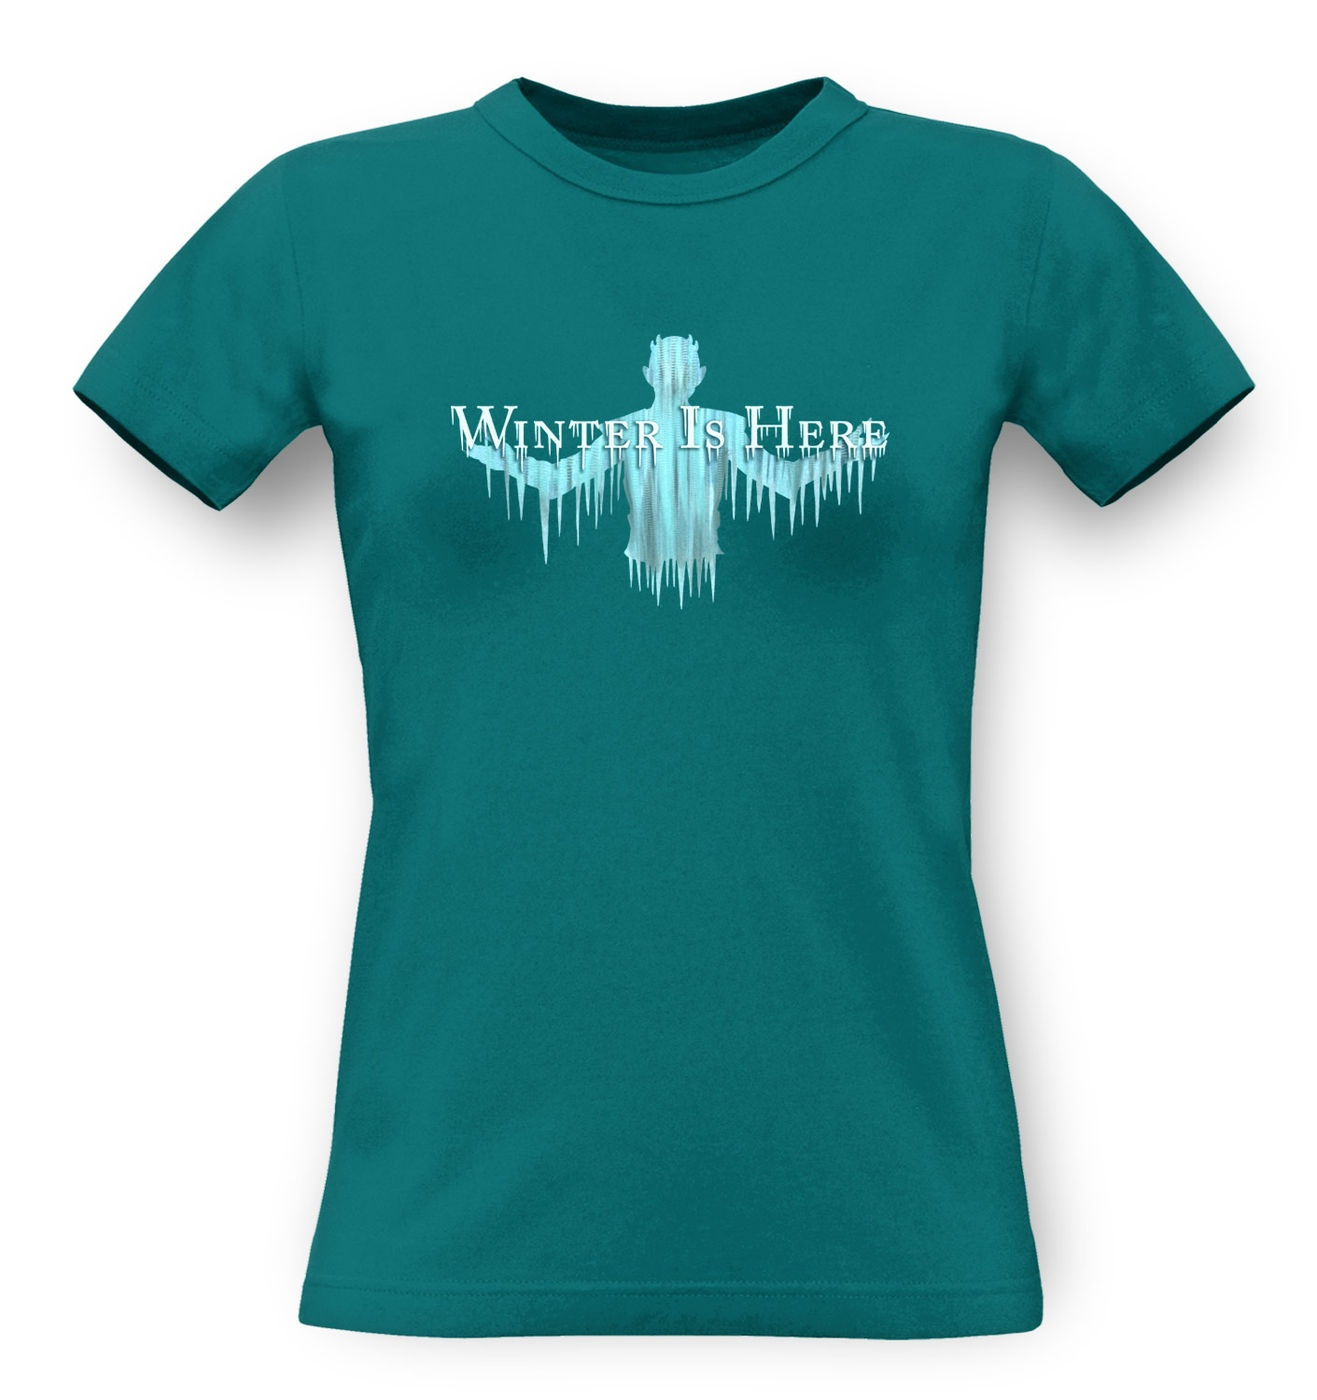 Winter Is Here classic womens t-shirt by Something Geeky